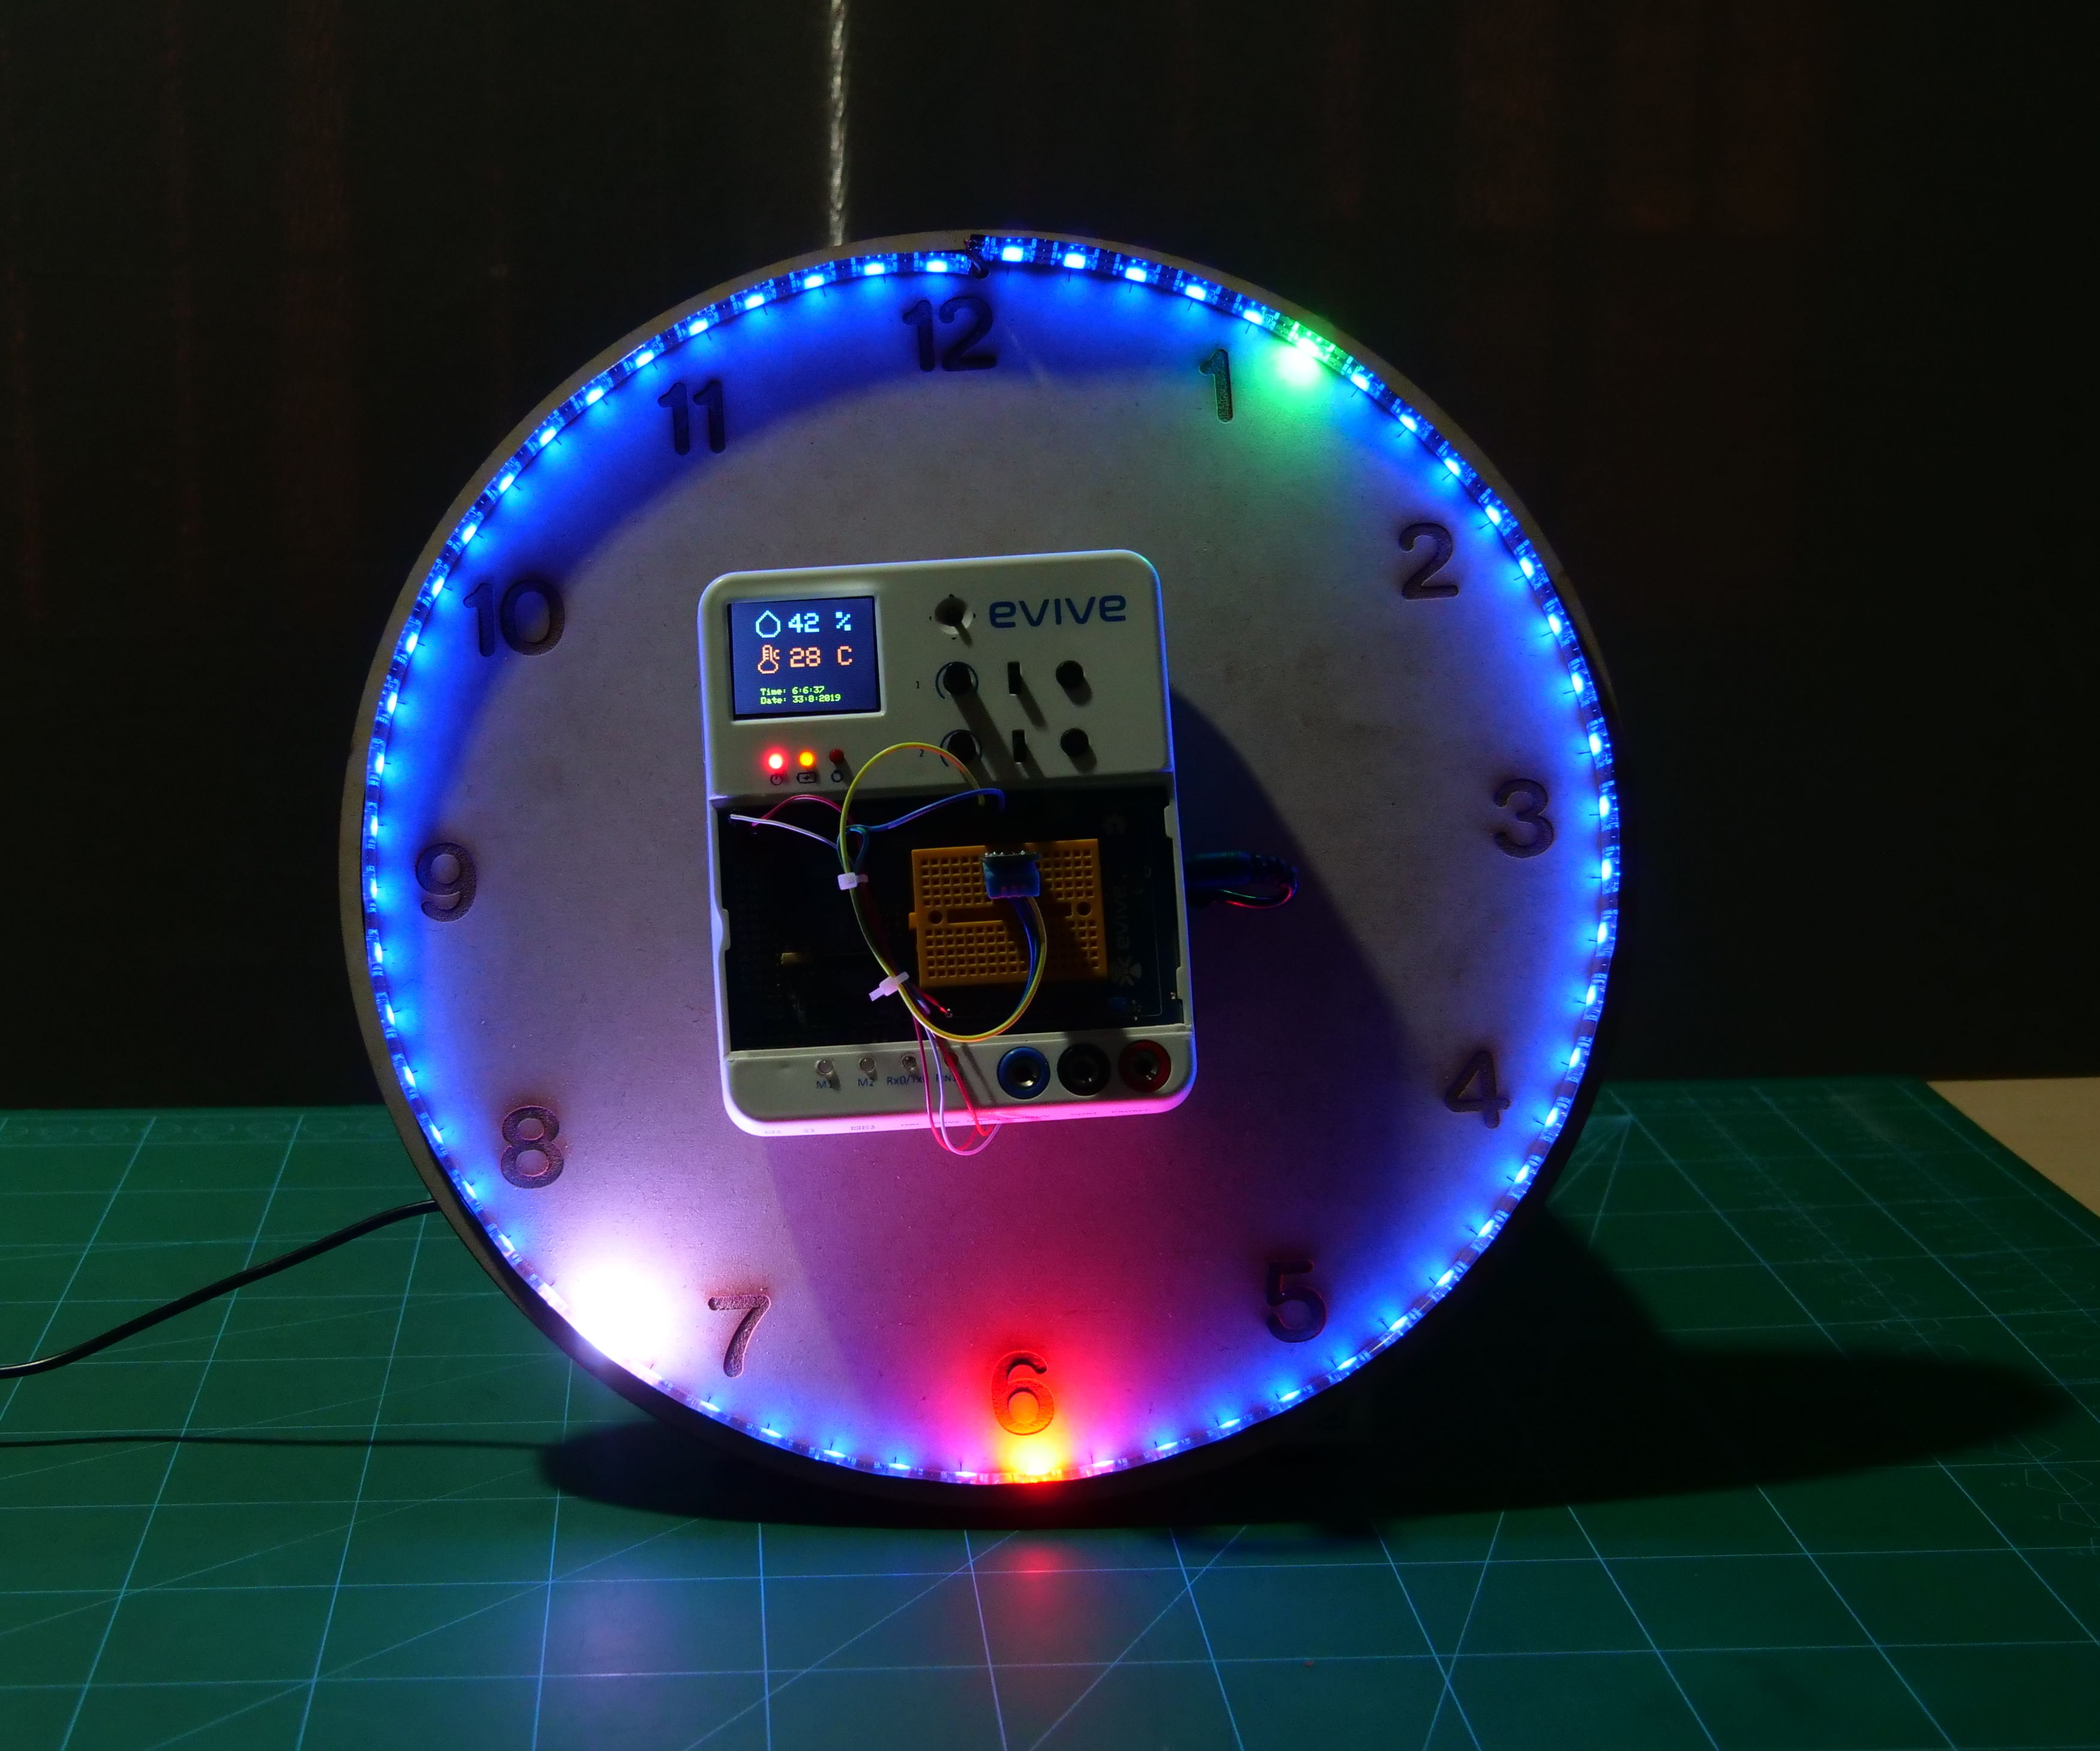 RGB LED Wall Clock With Temperature Sensor Using Evive- Arduino Based Embedded Platform